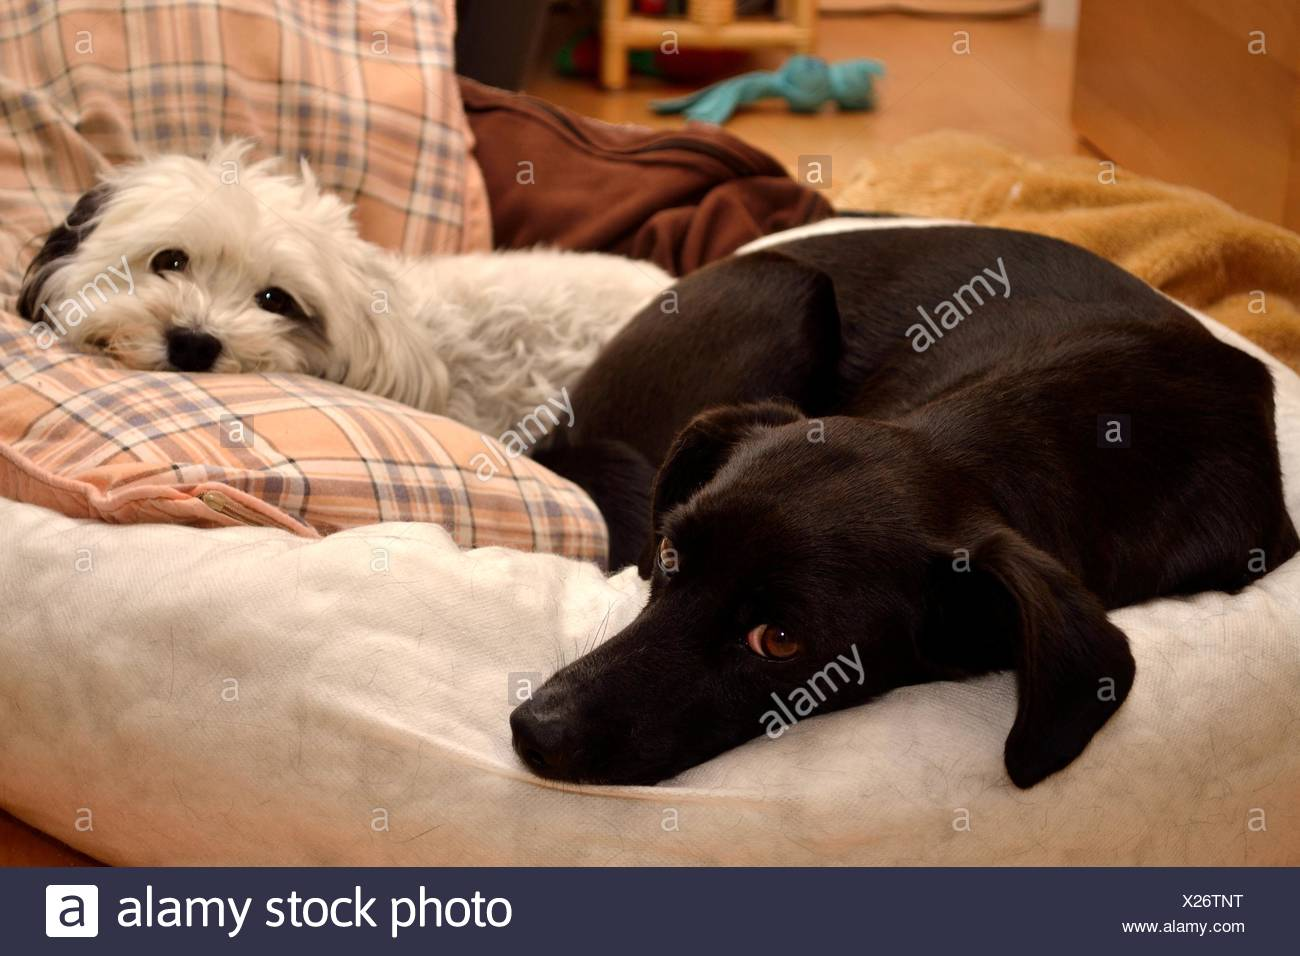 Together in dog bed - Stock Image